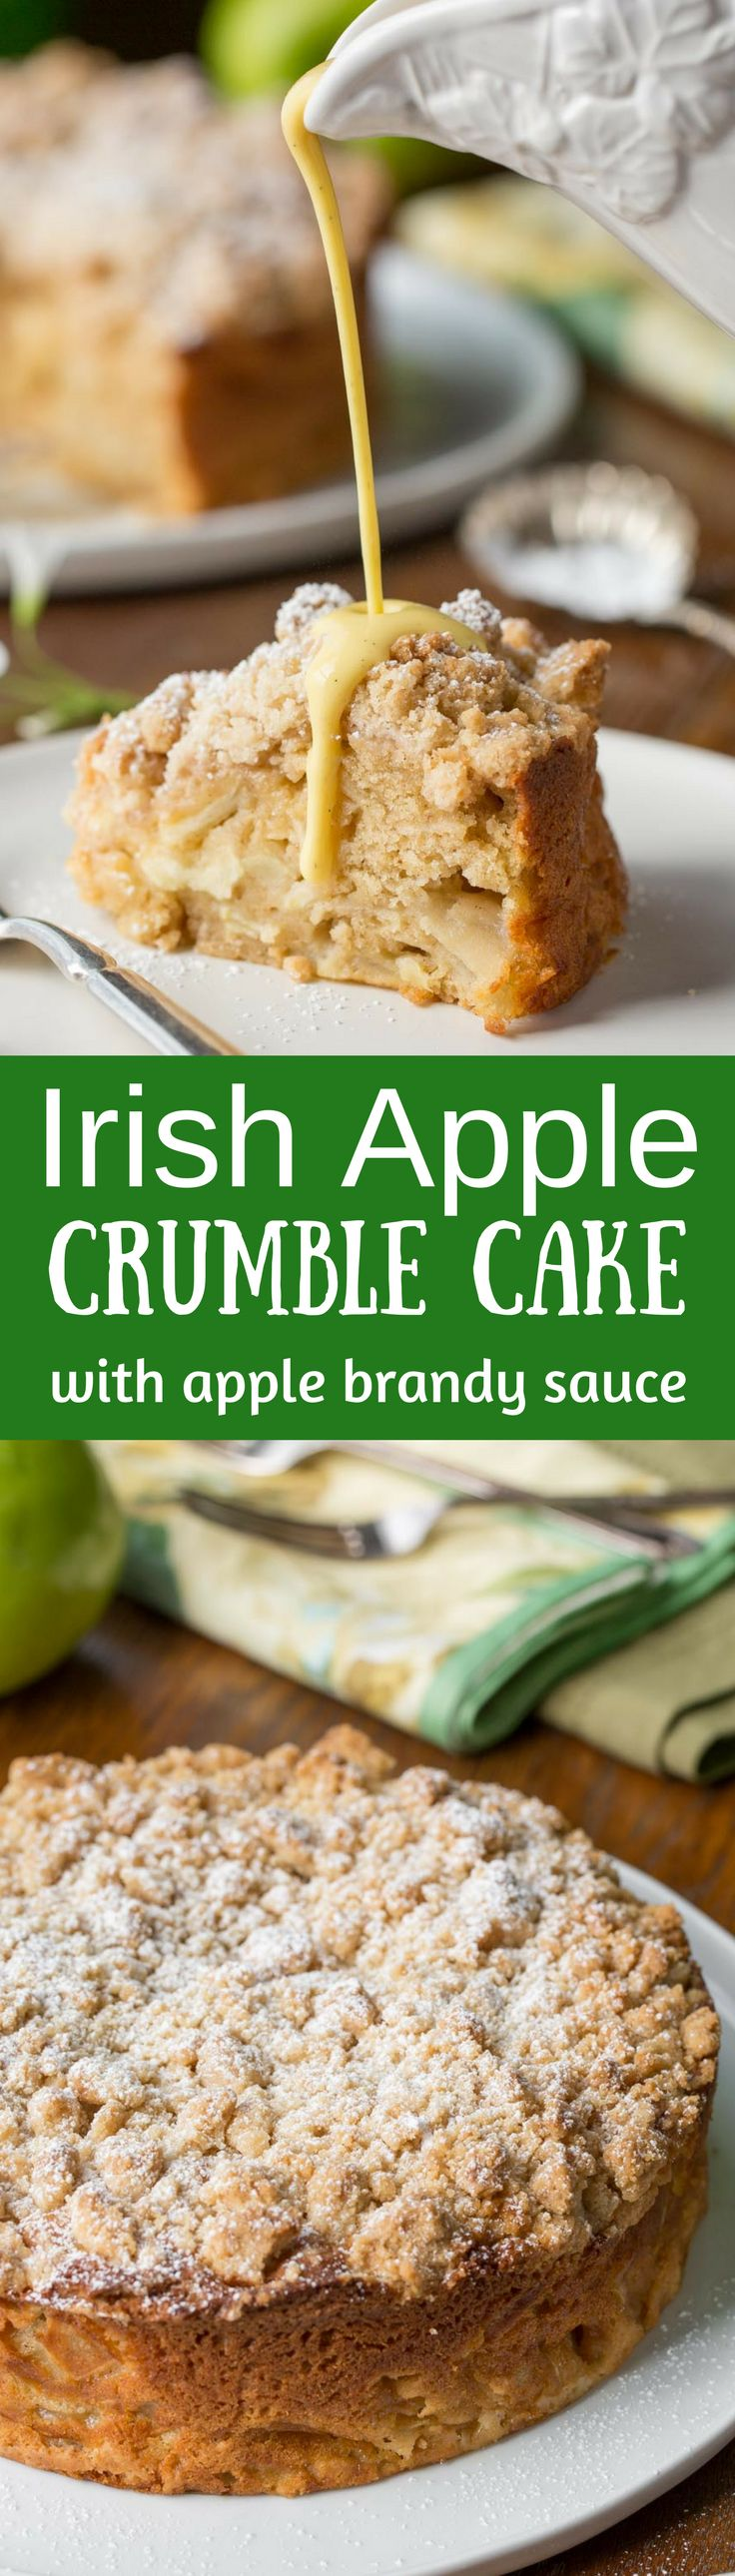 Irish Apple Crumble Cake with Apple Brandy Sauce ~ made with fresh apples, plenty of cinnamon, and a sweet crumble top, this rustic and moist cake is homey and delightful especially when drizzled with the Apple Brandy Sauce!